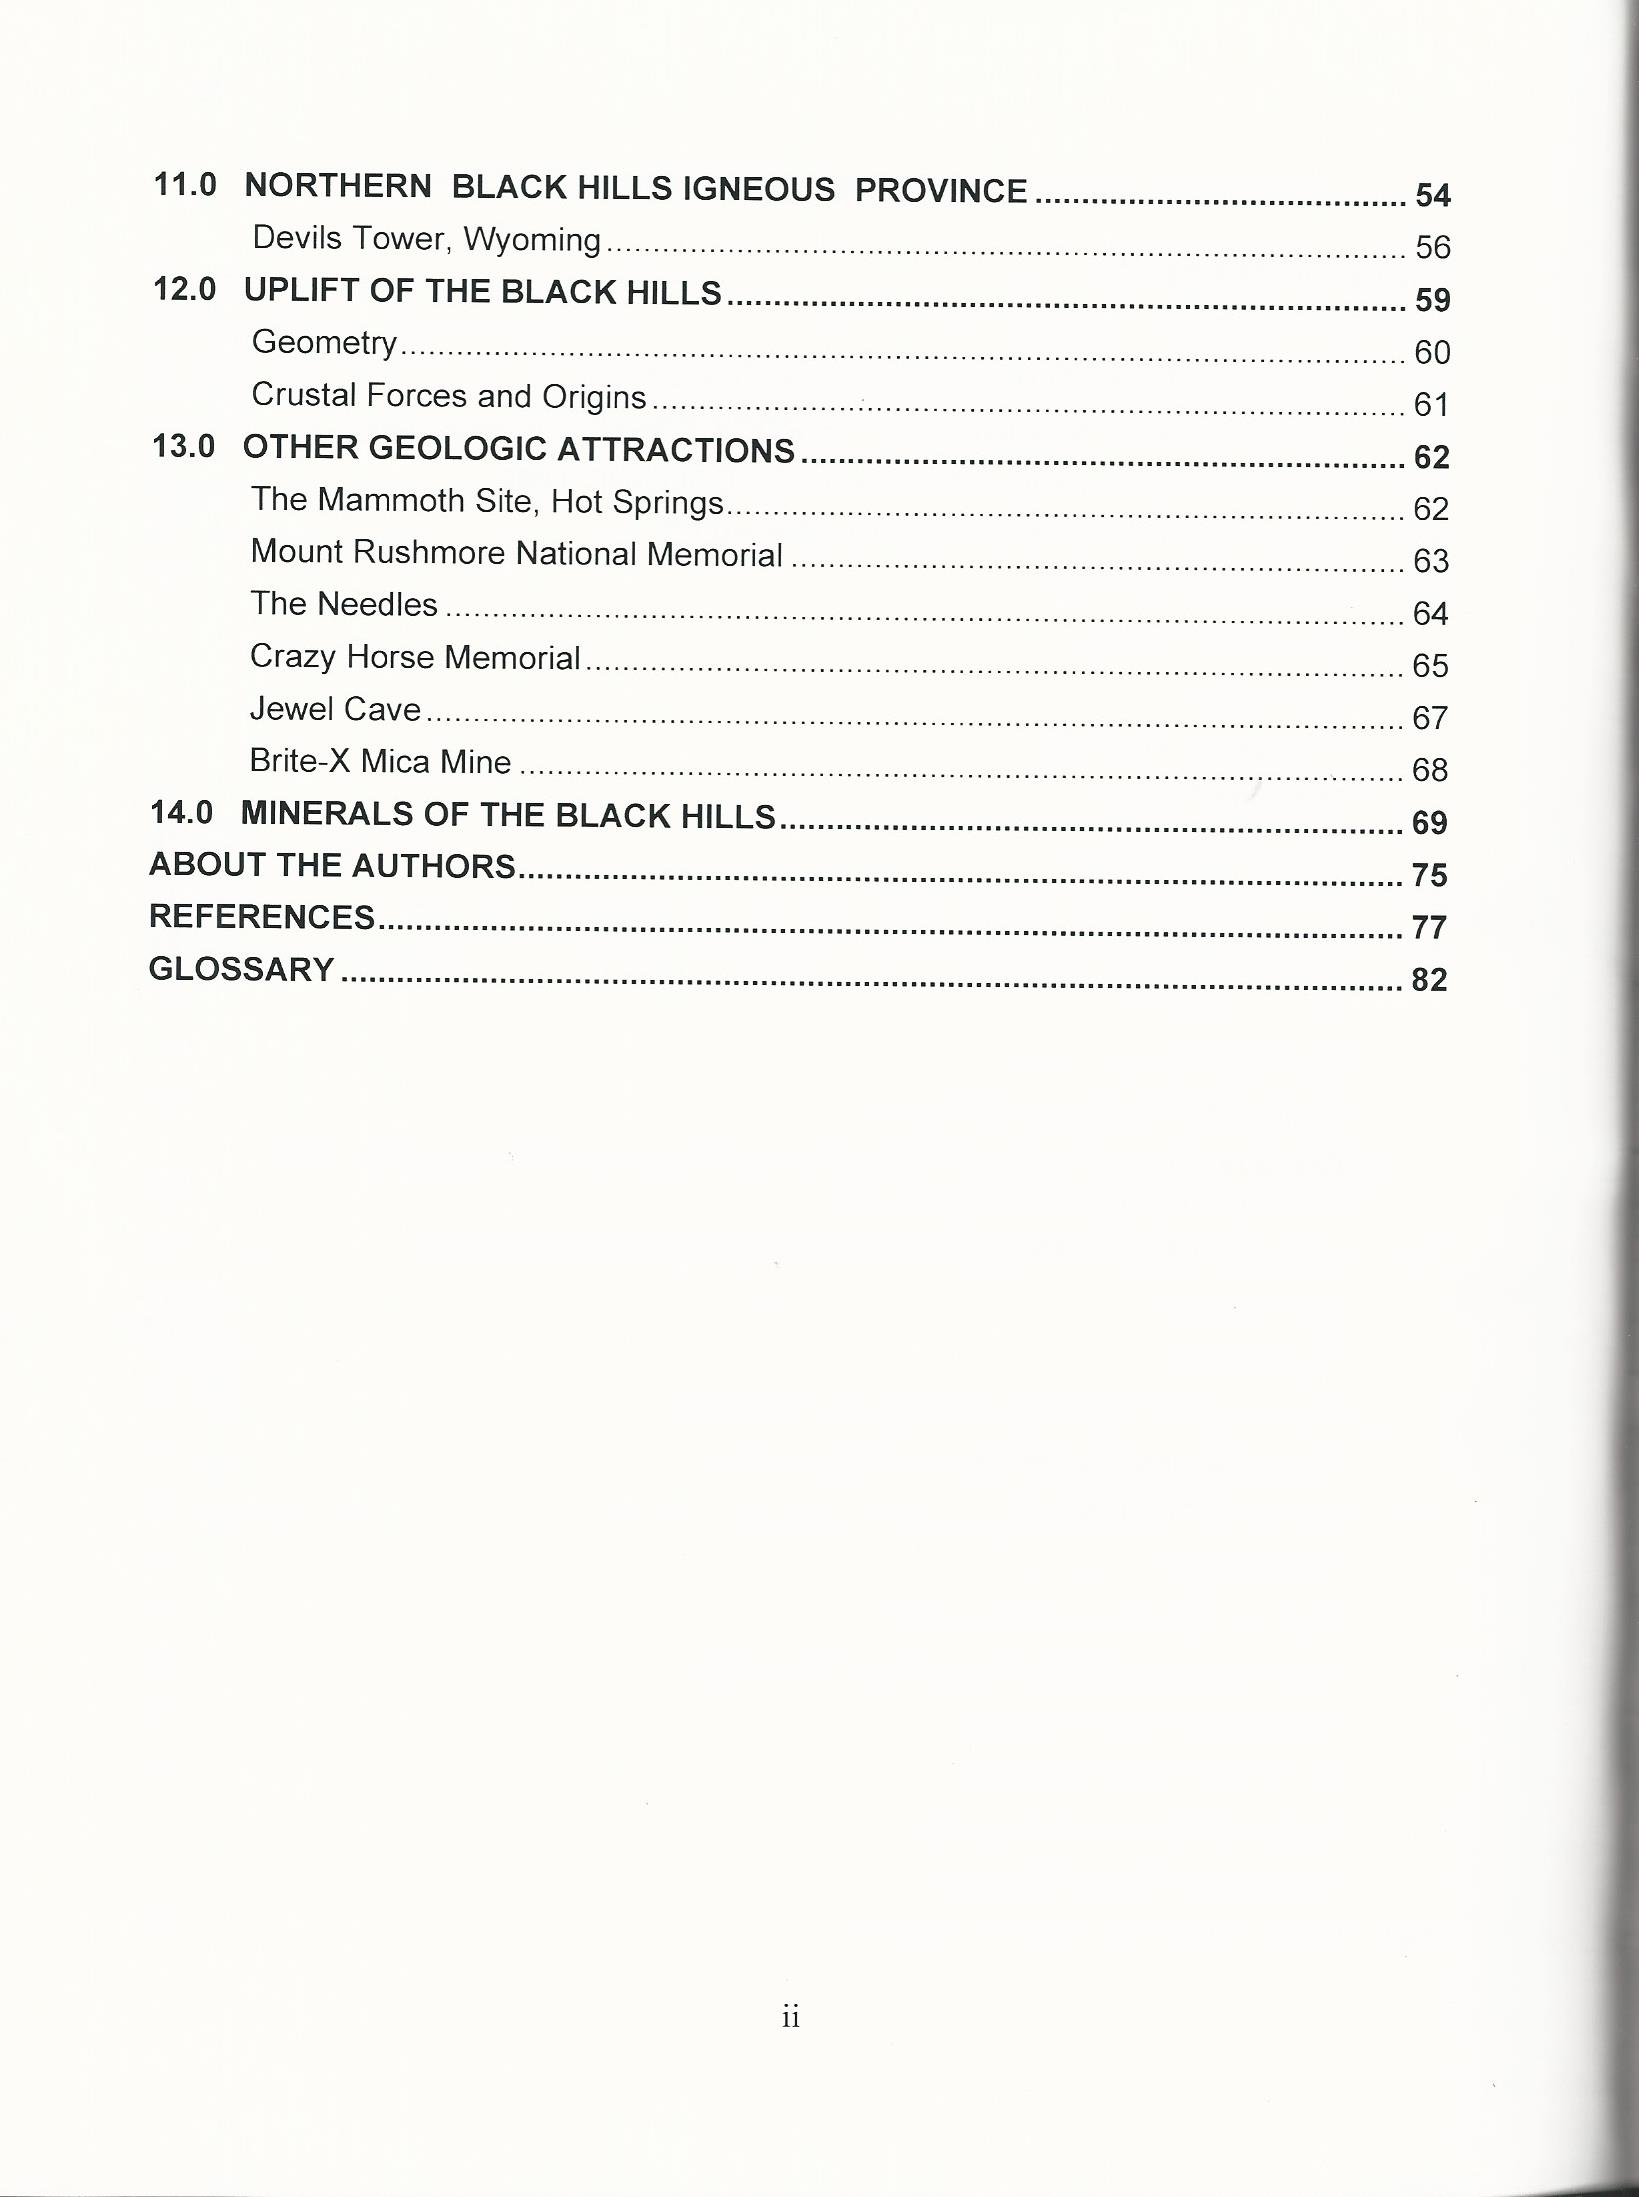 worksheet Factors Of Production Worksheet guidebook to the geology of black hills south dakota softcover softcover